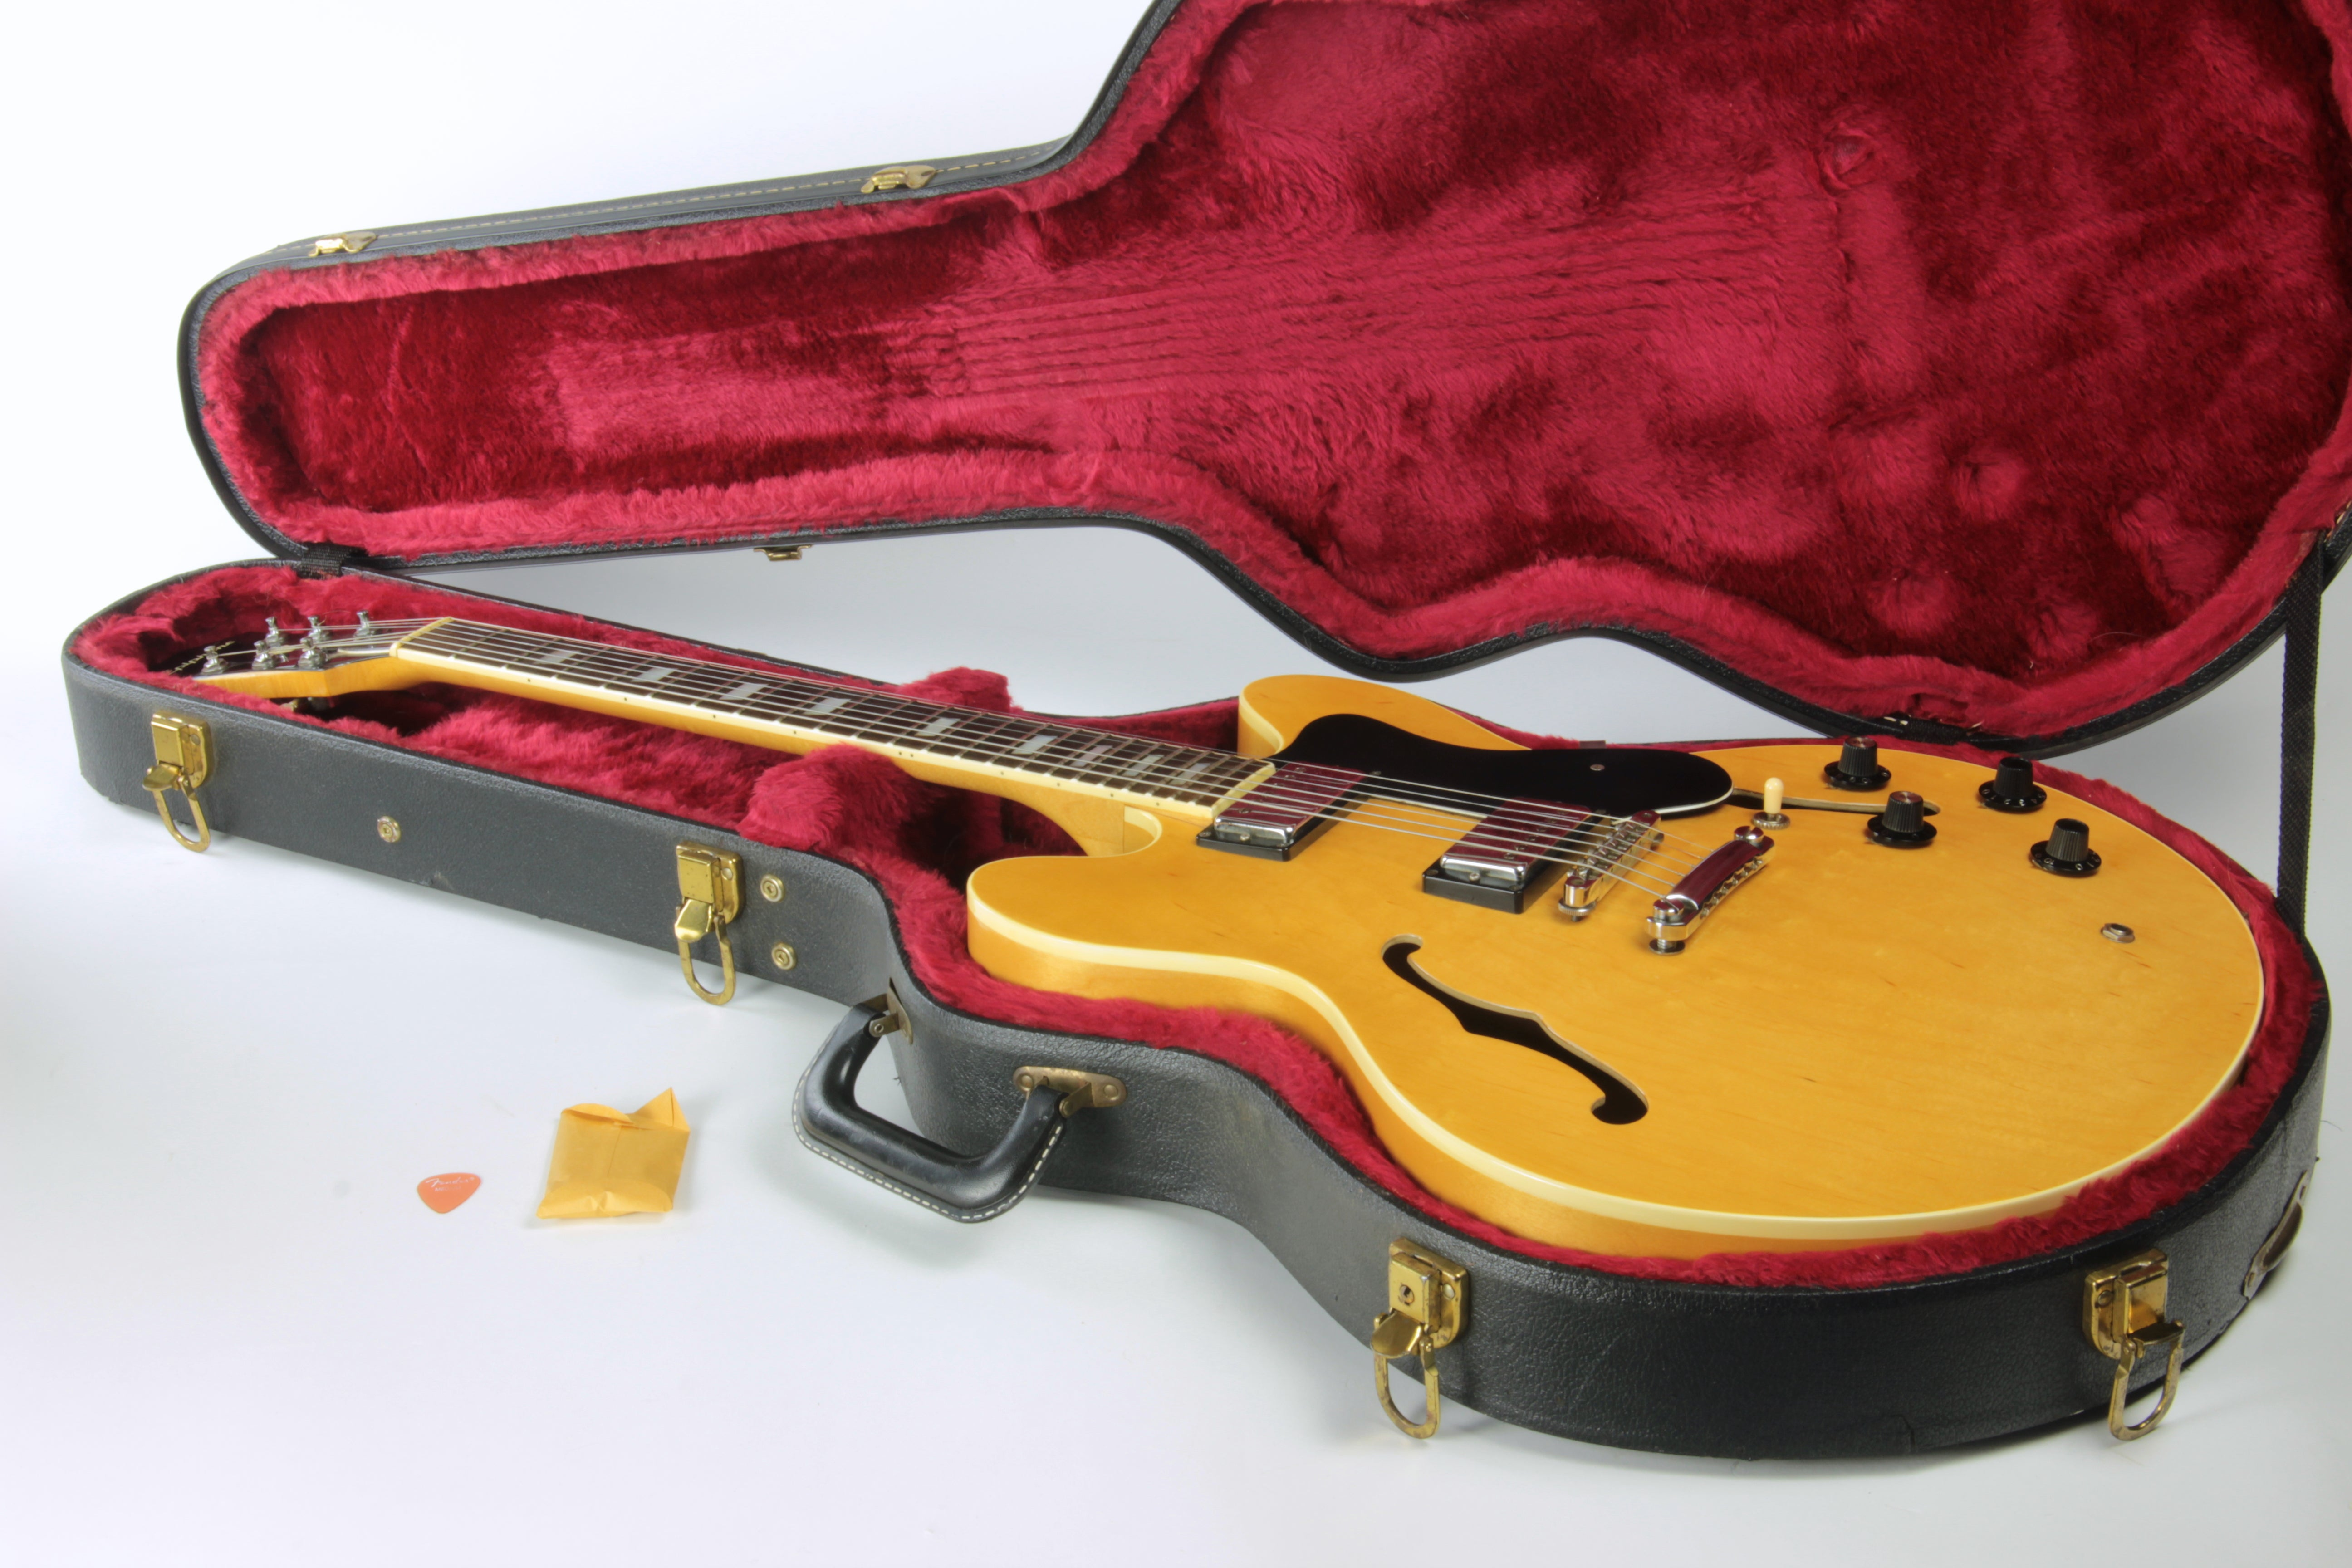 1982 Epiphone MIJ Japan RIVIERA Antique Natural Matsumoku Gibson ES-335 Case Original Oasis